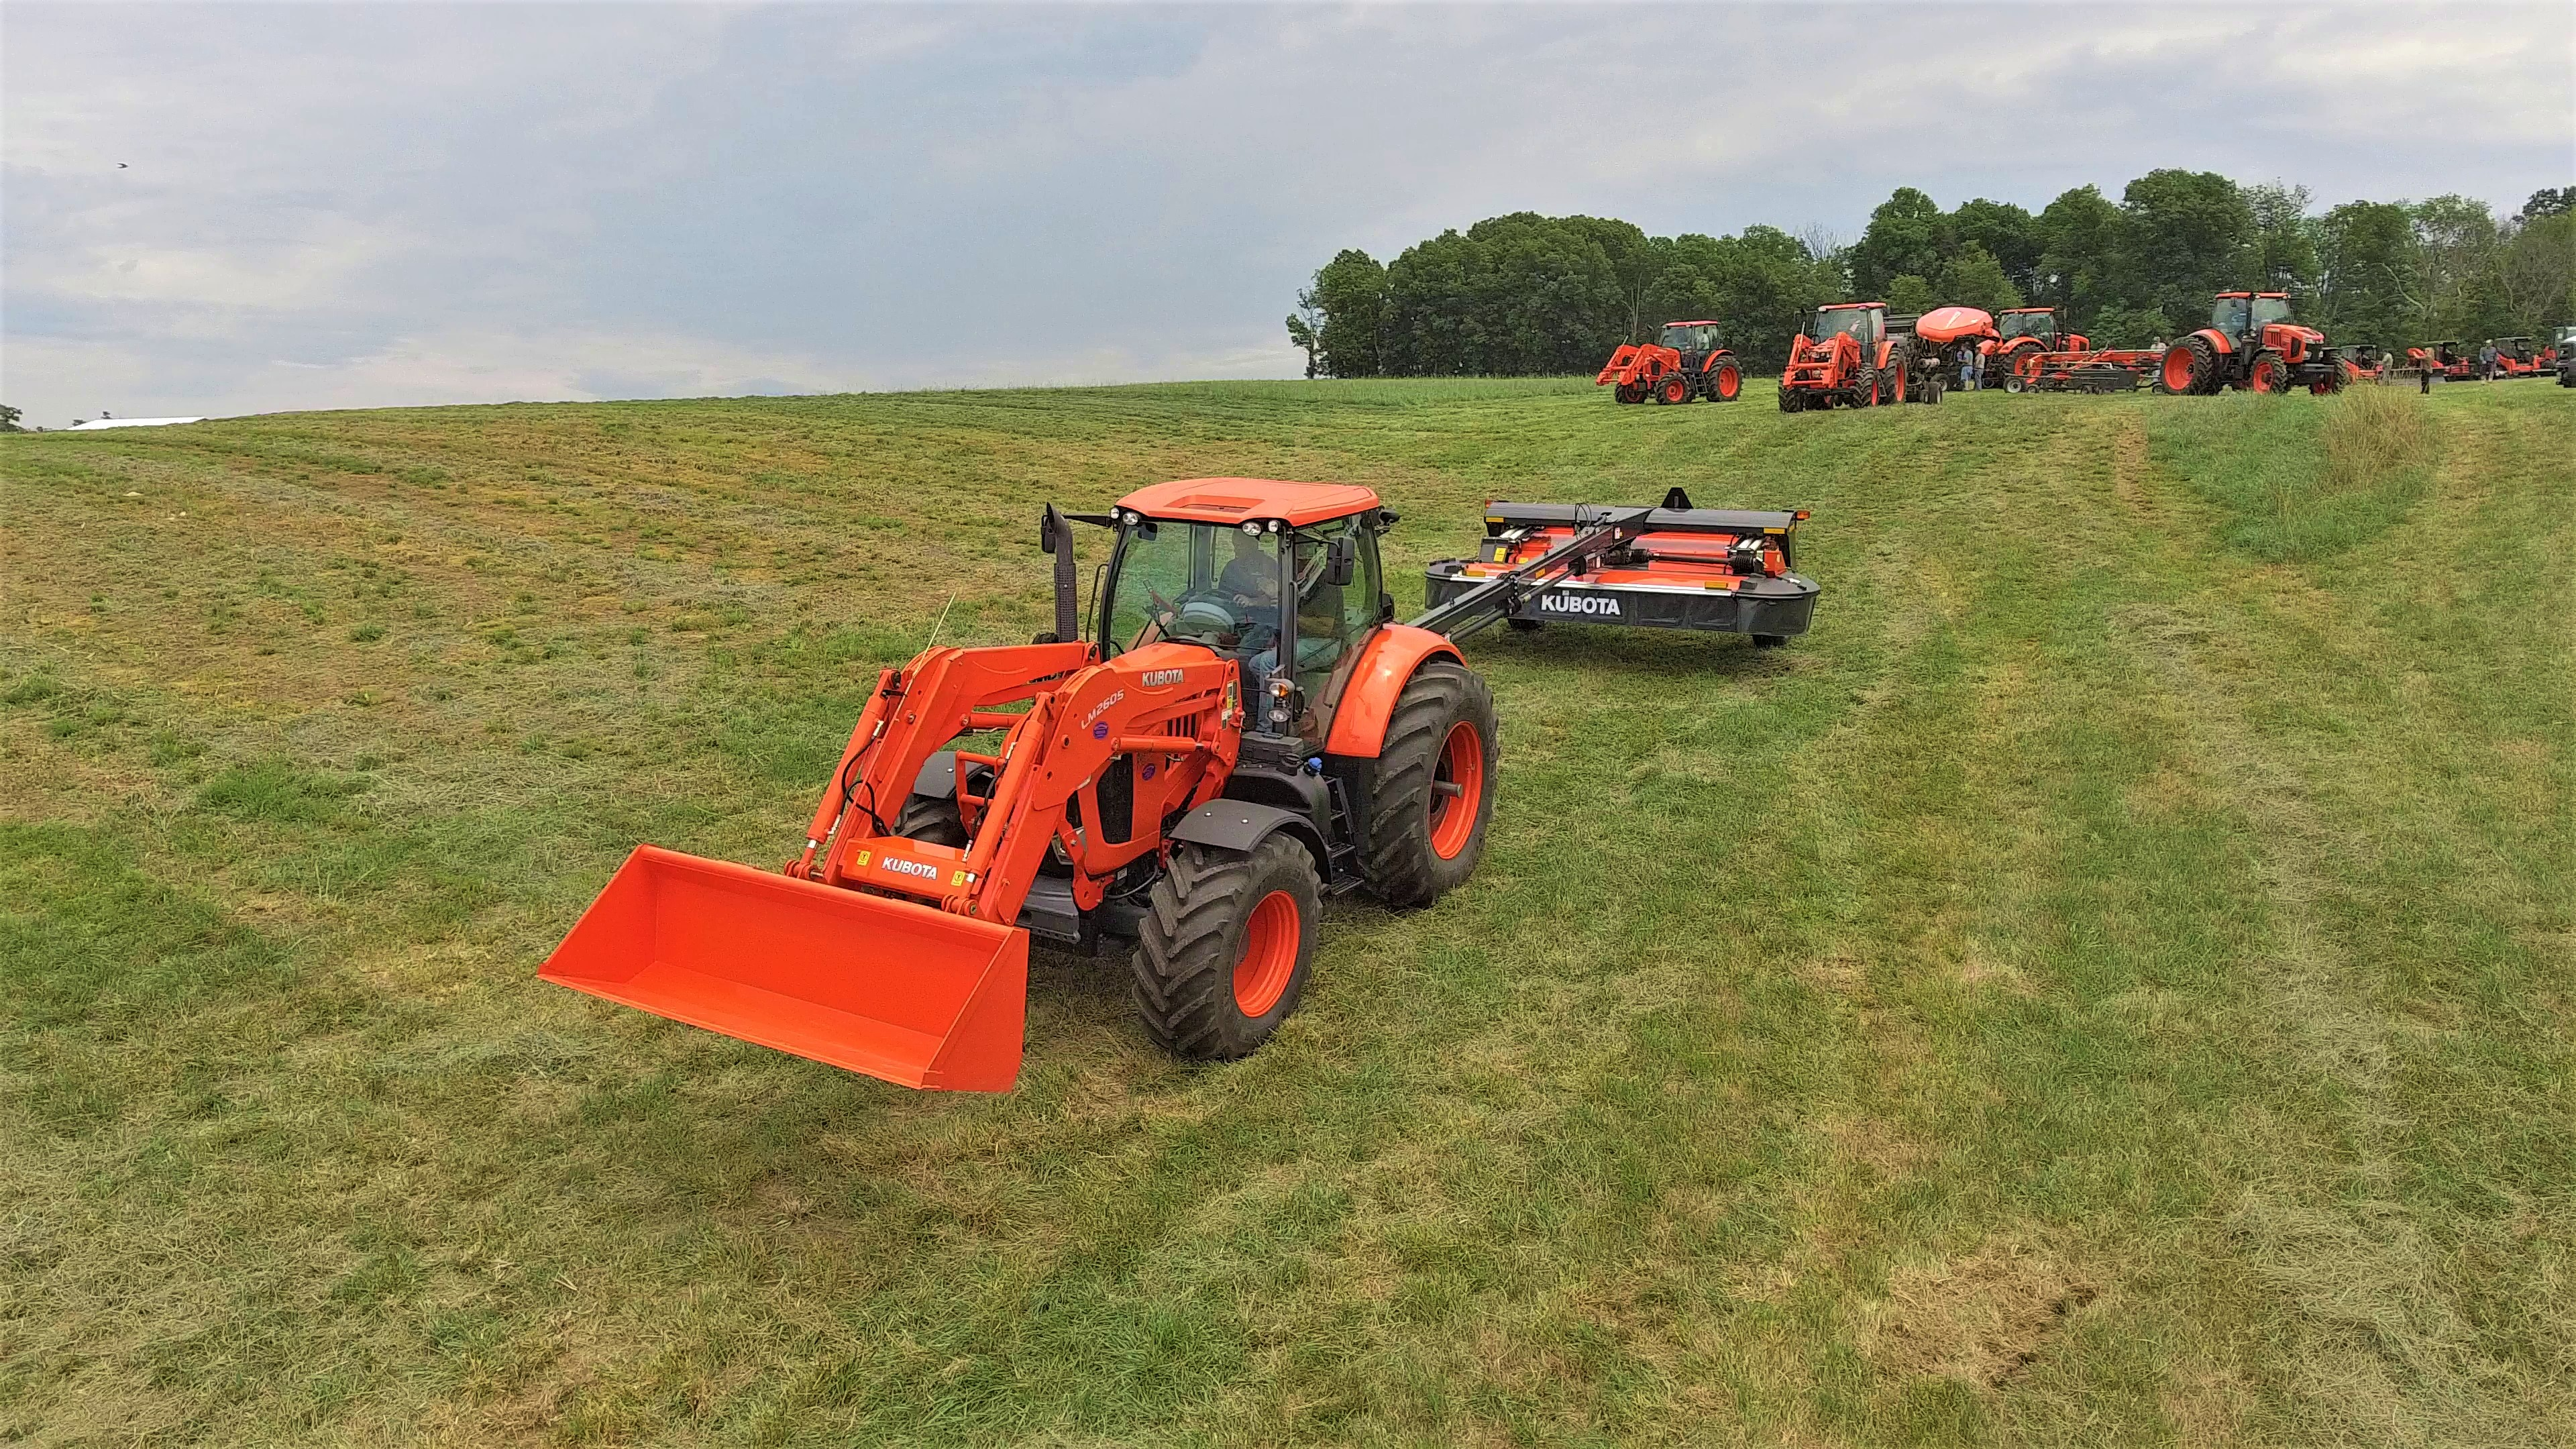 Kubota Field Day 2017